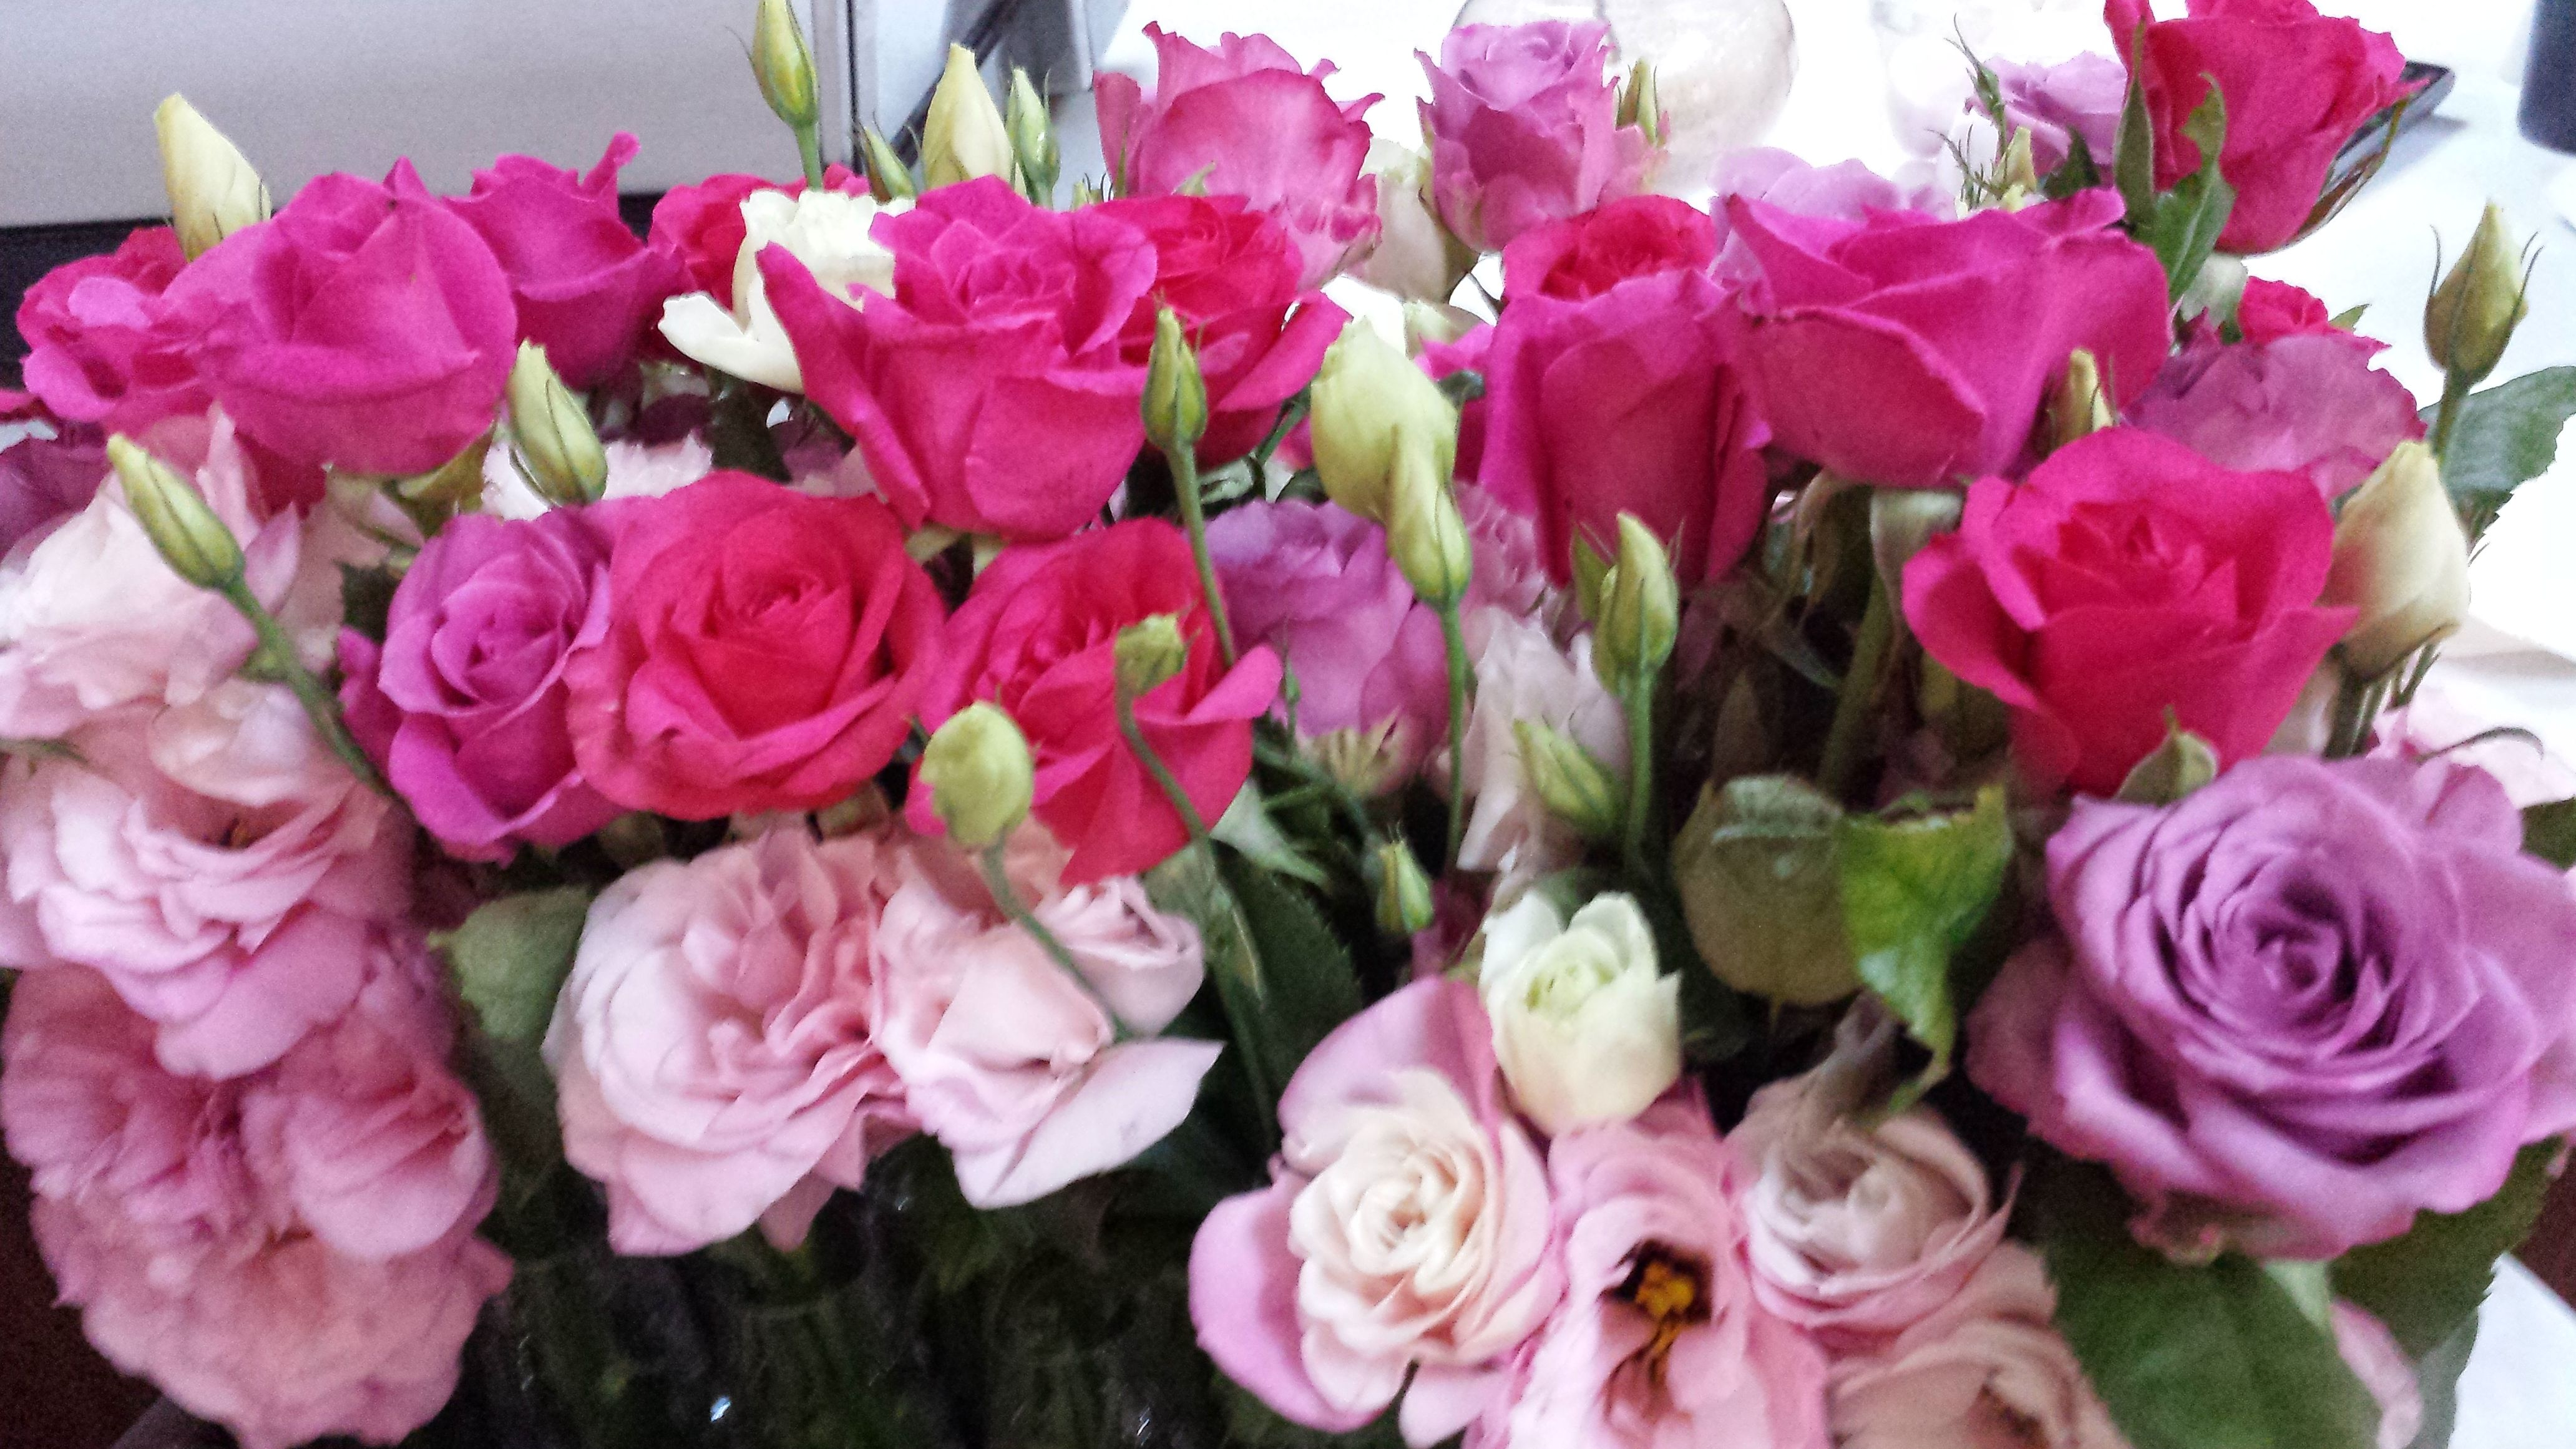 Table Flowers Clustered Together